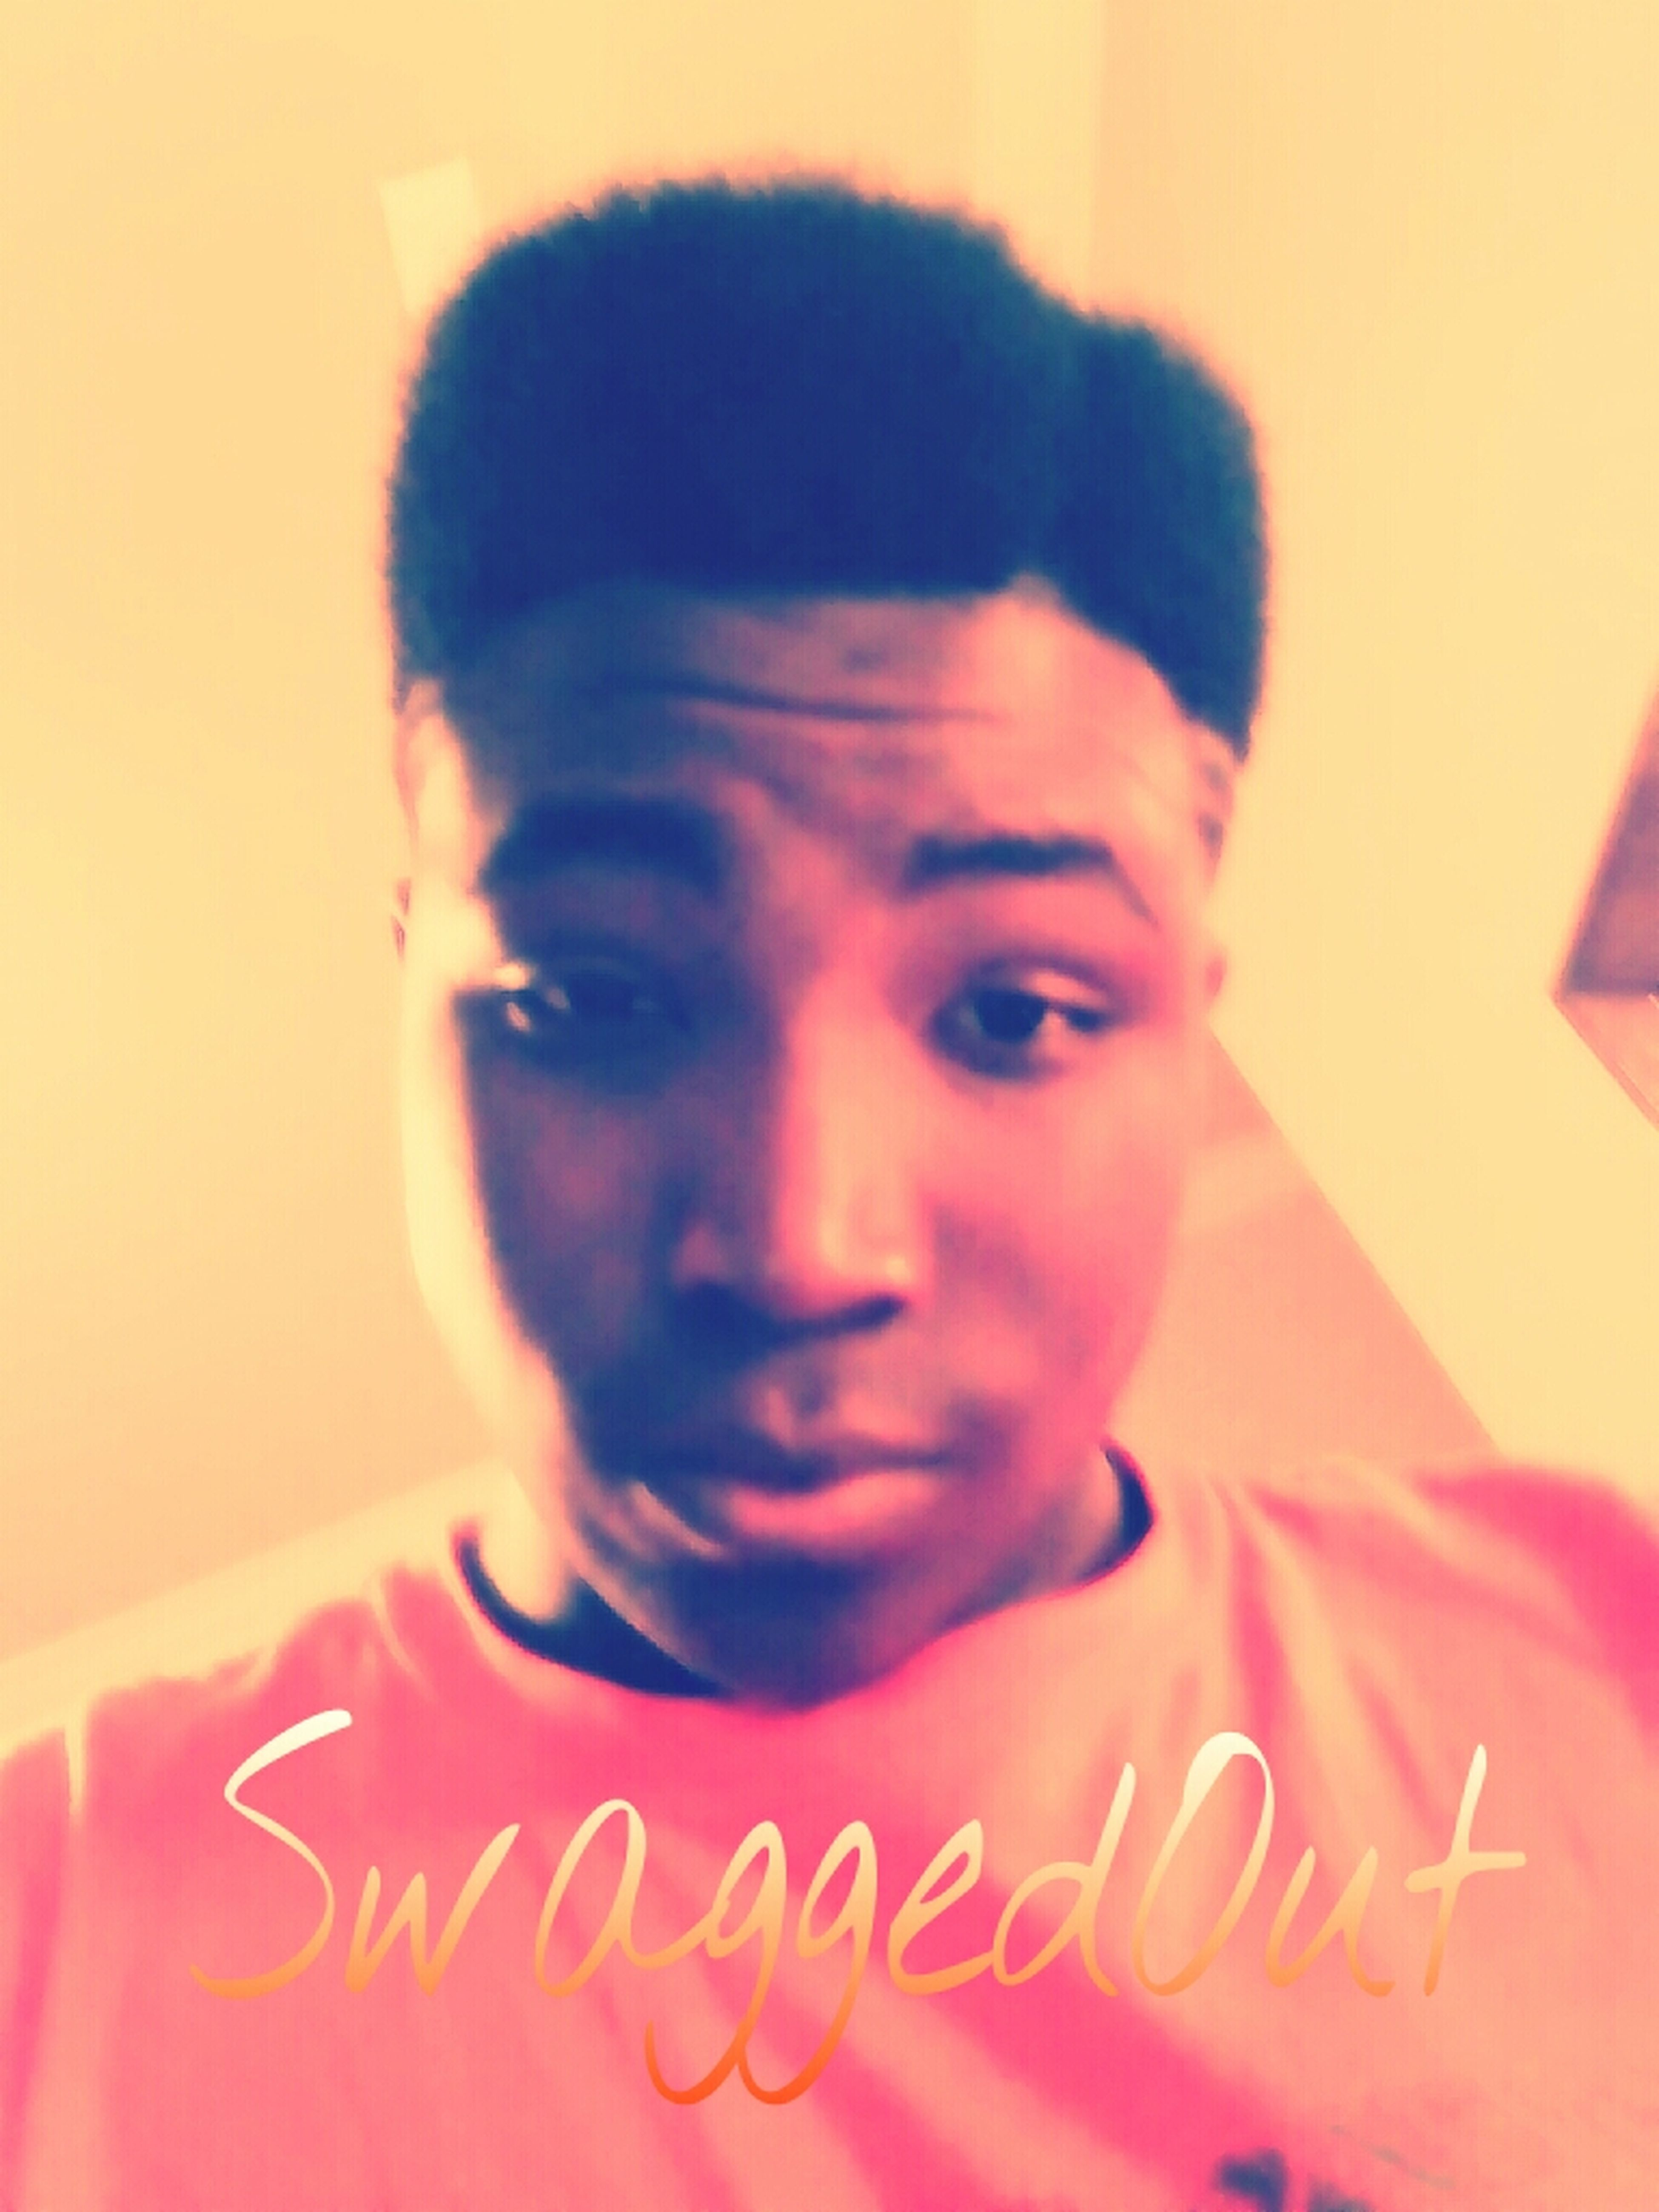 Iswagg